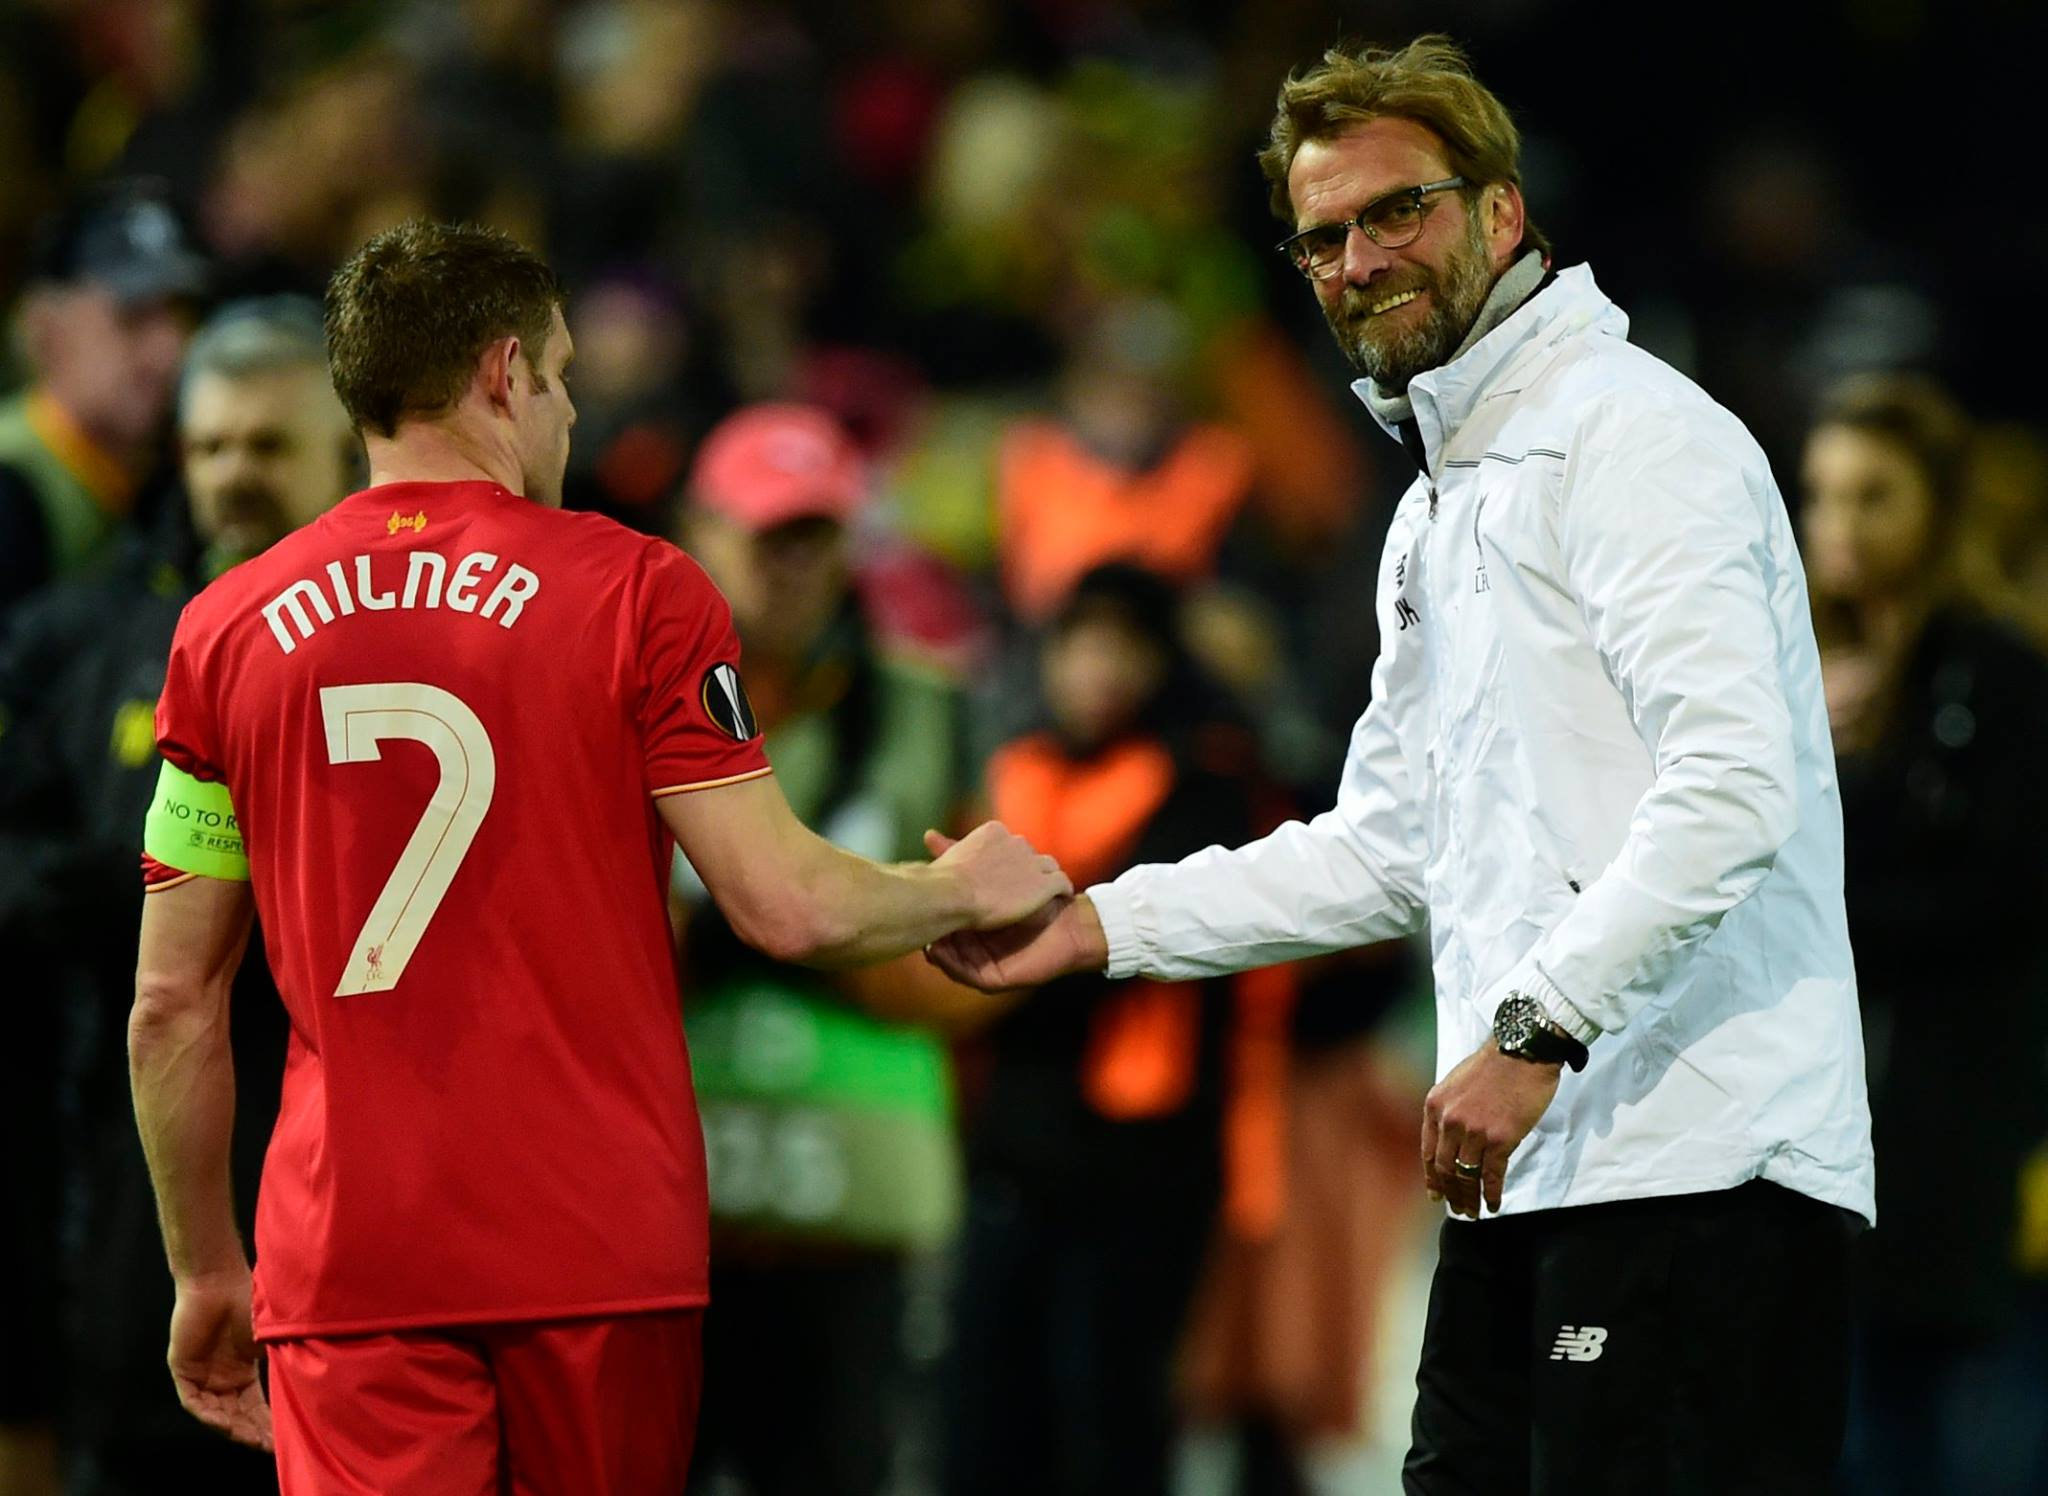 James Milner revelou o que Klopp disse ao intervalo do jogo contra o Dortmund